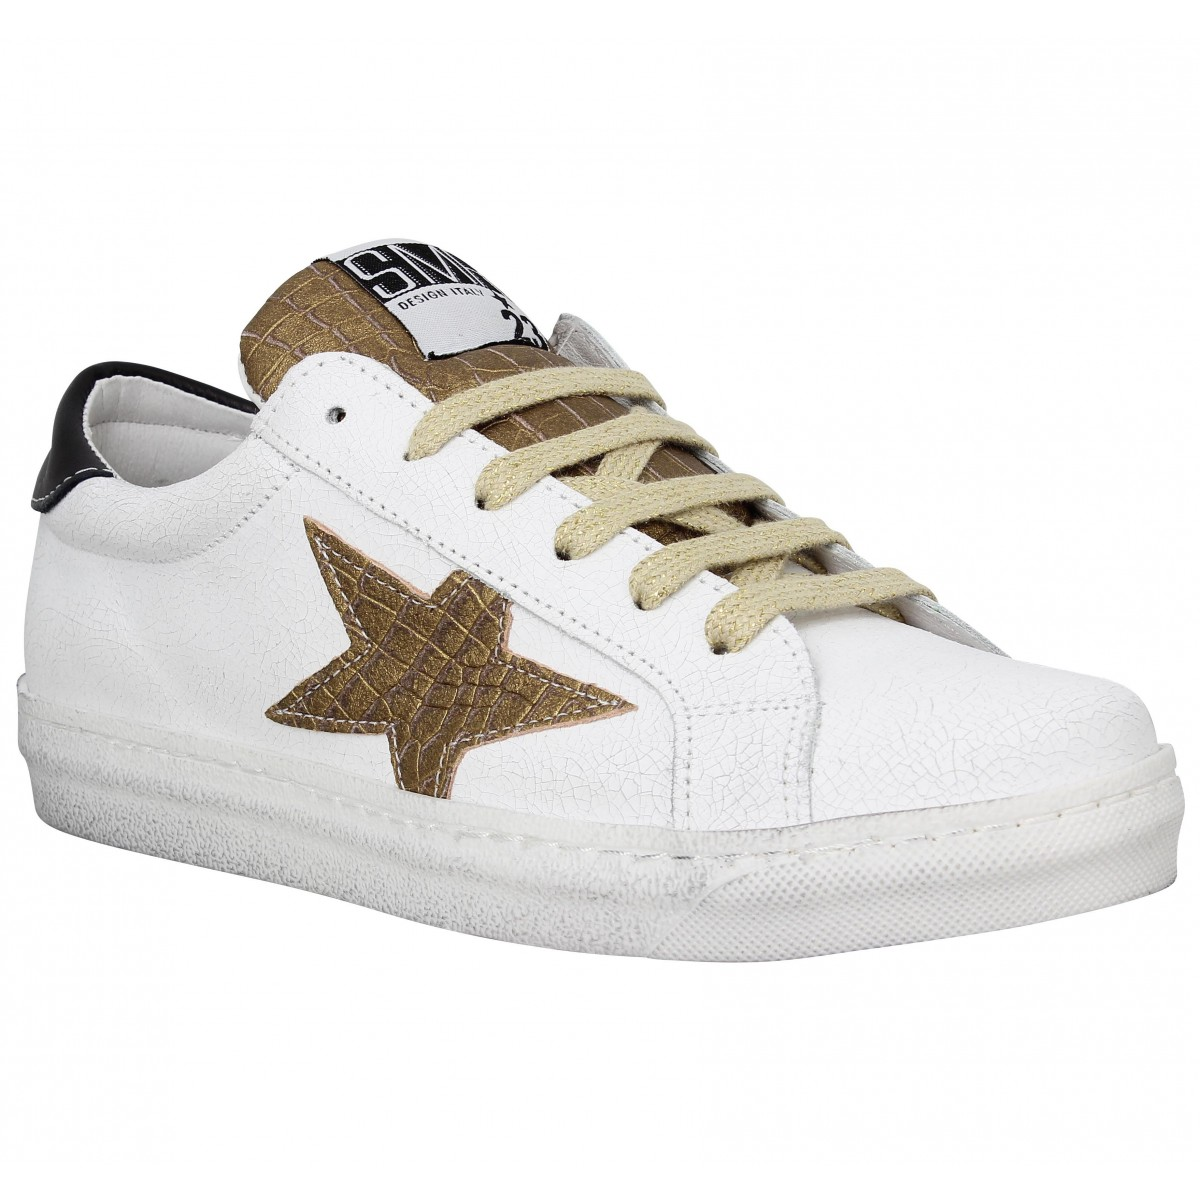 N Enfants O21 Baskets Stars Paillettes - Blanc qGWY6nqsuE